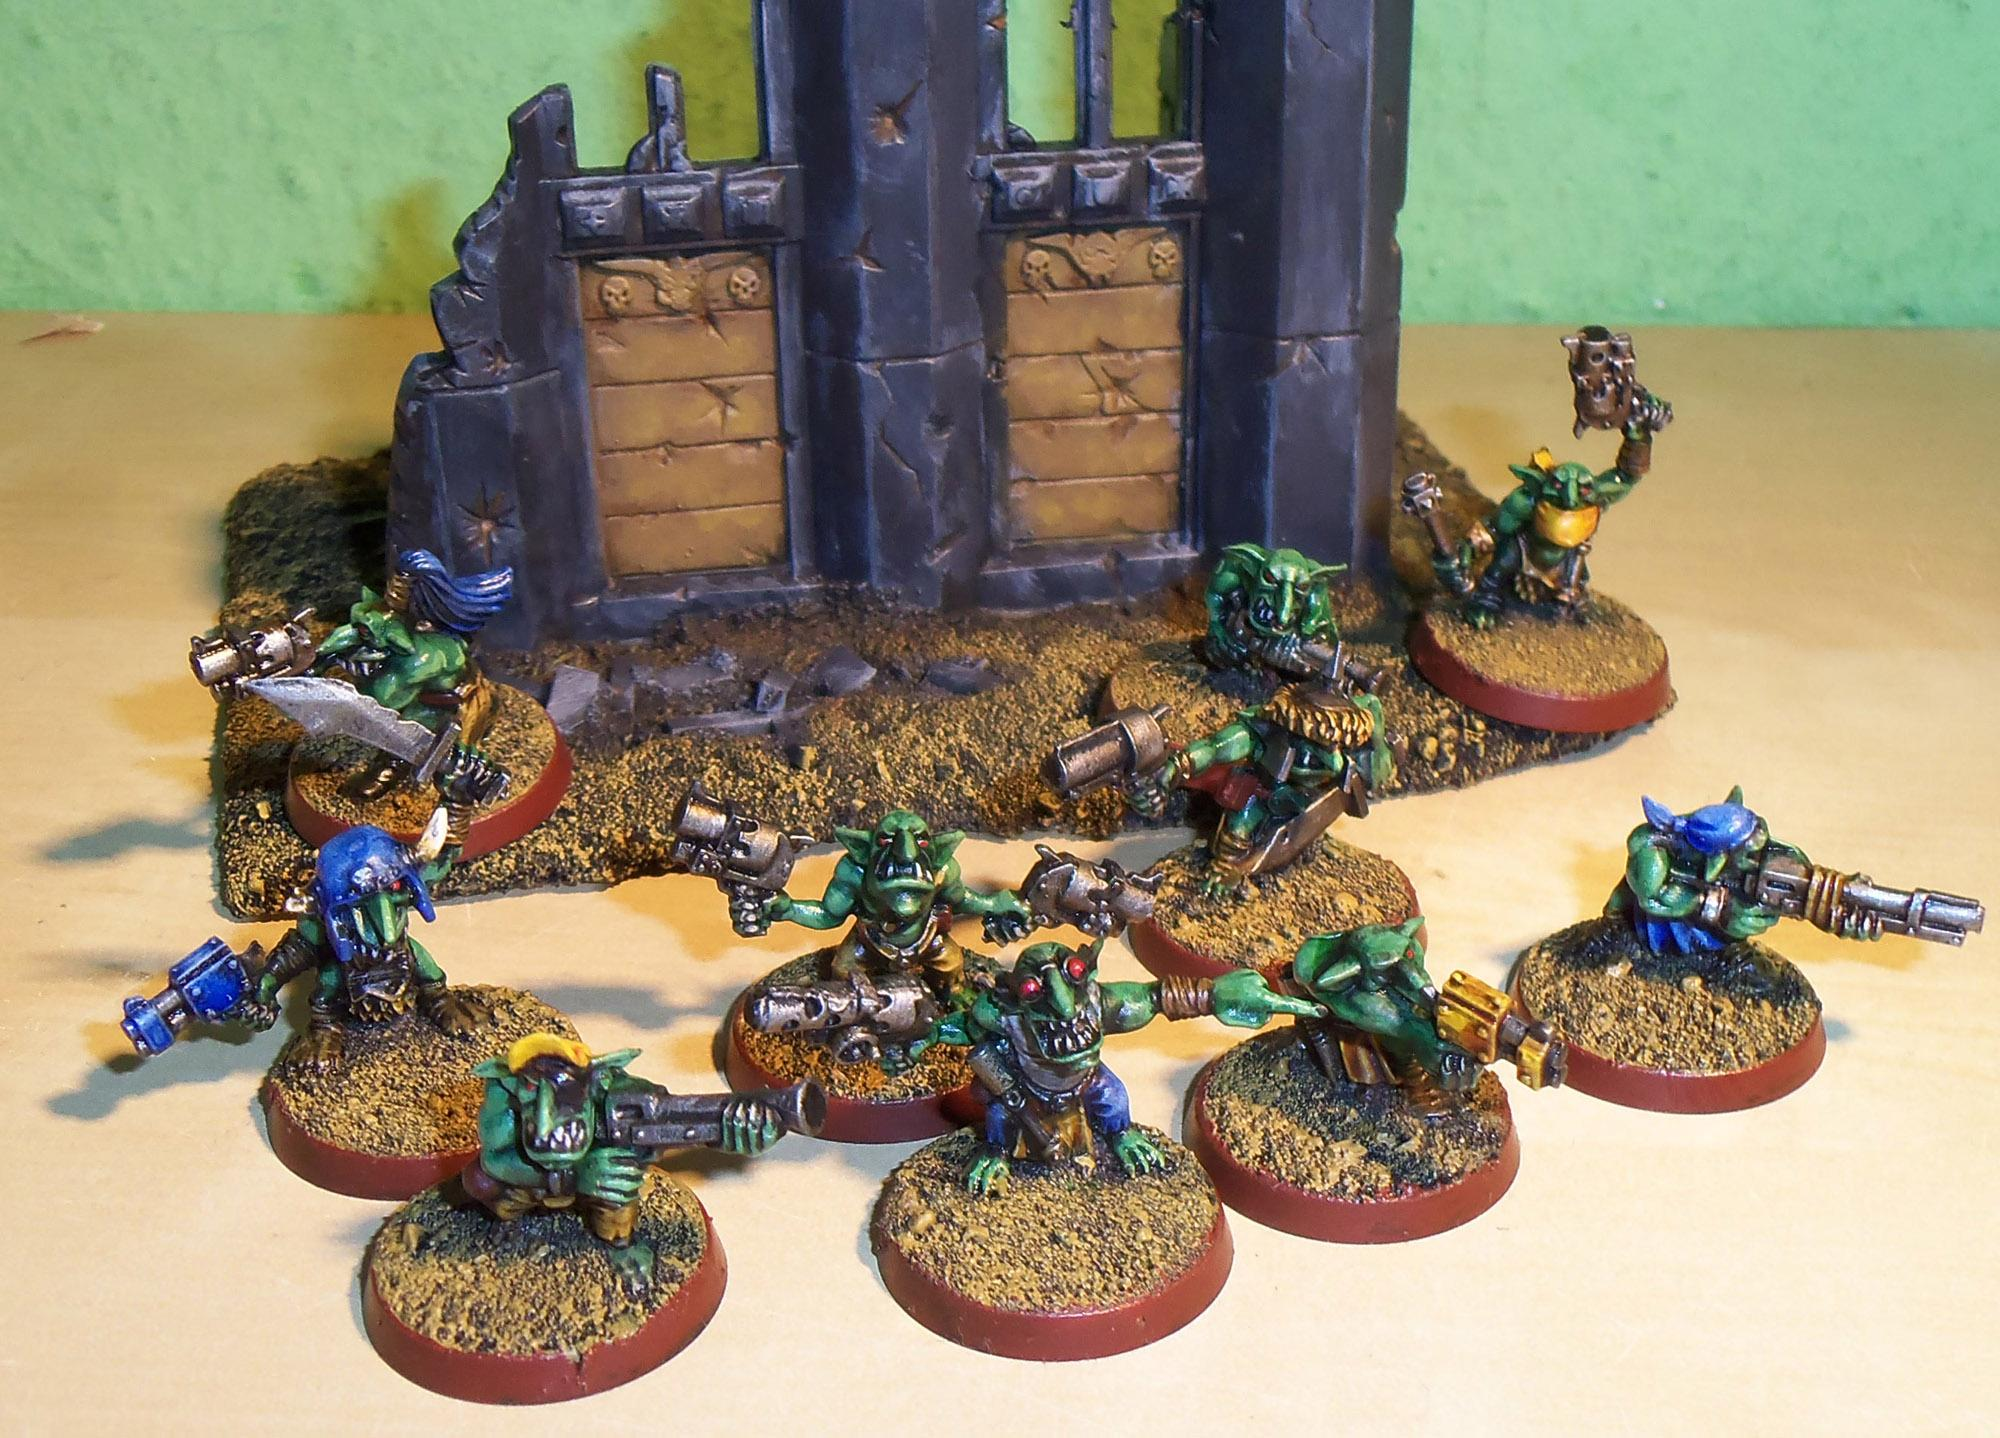 Bad Moons, Grots, Orks